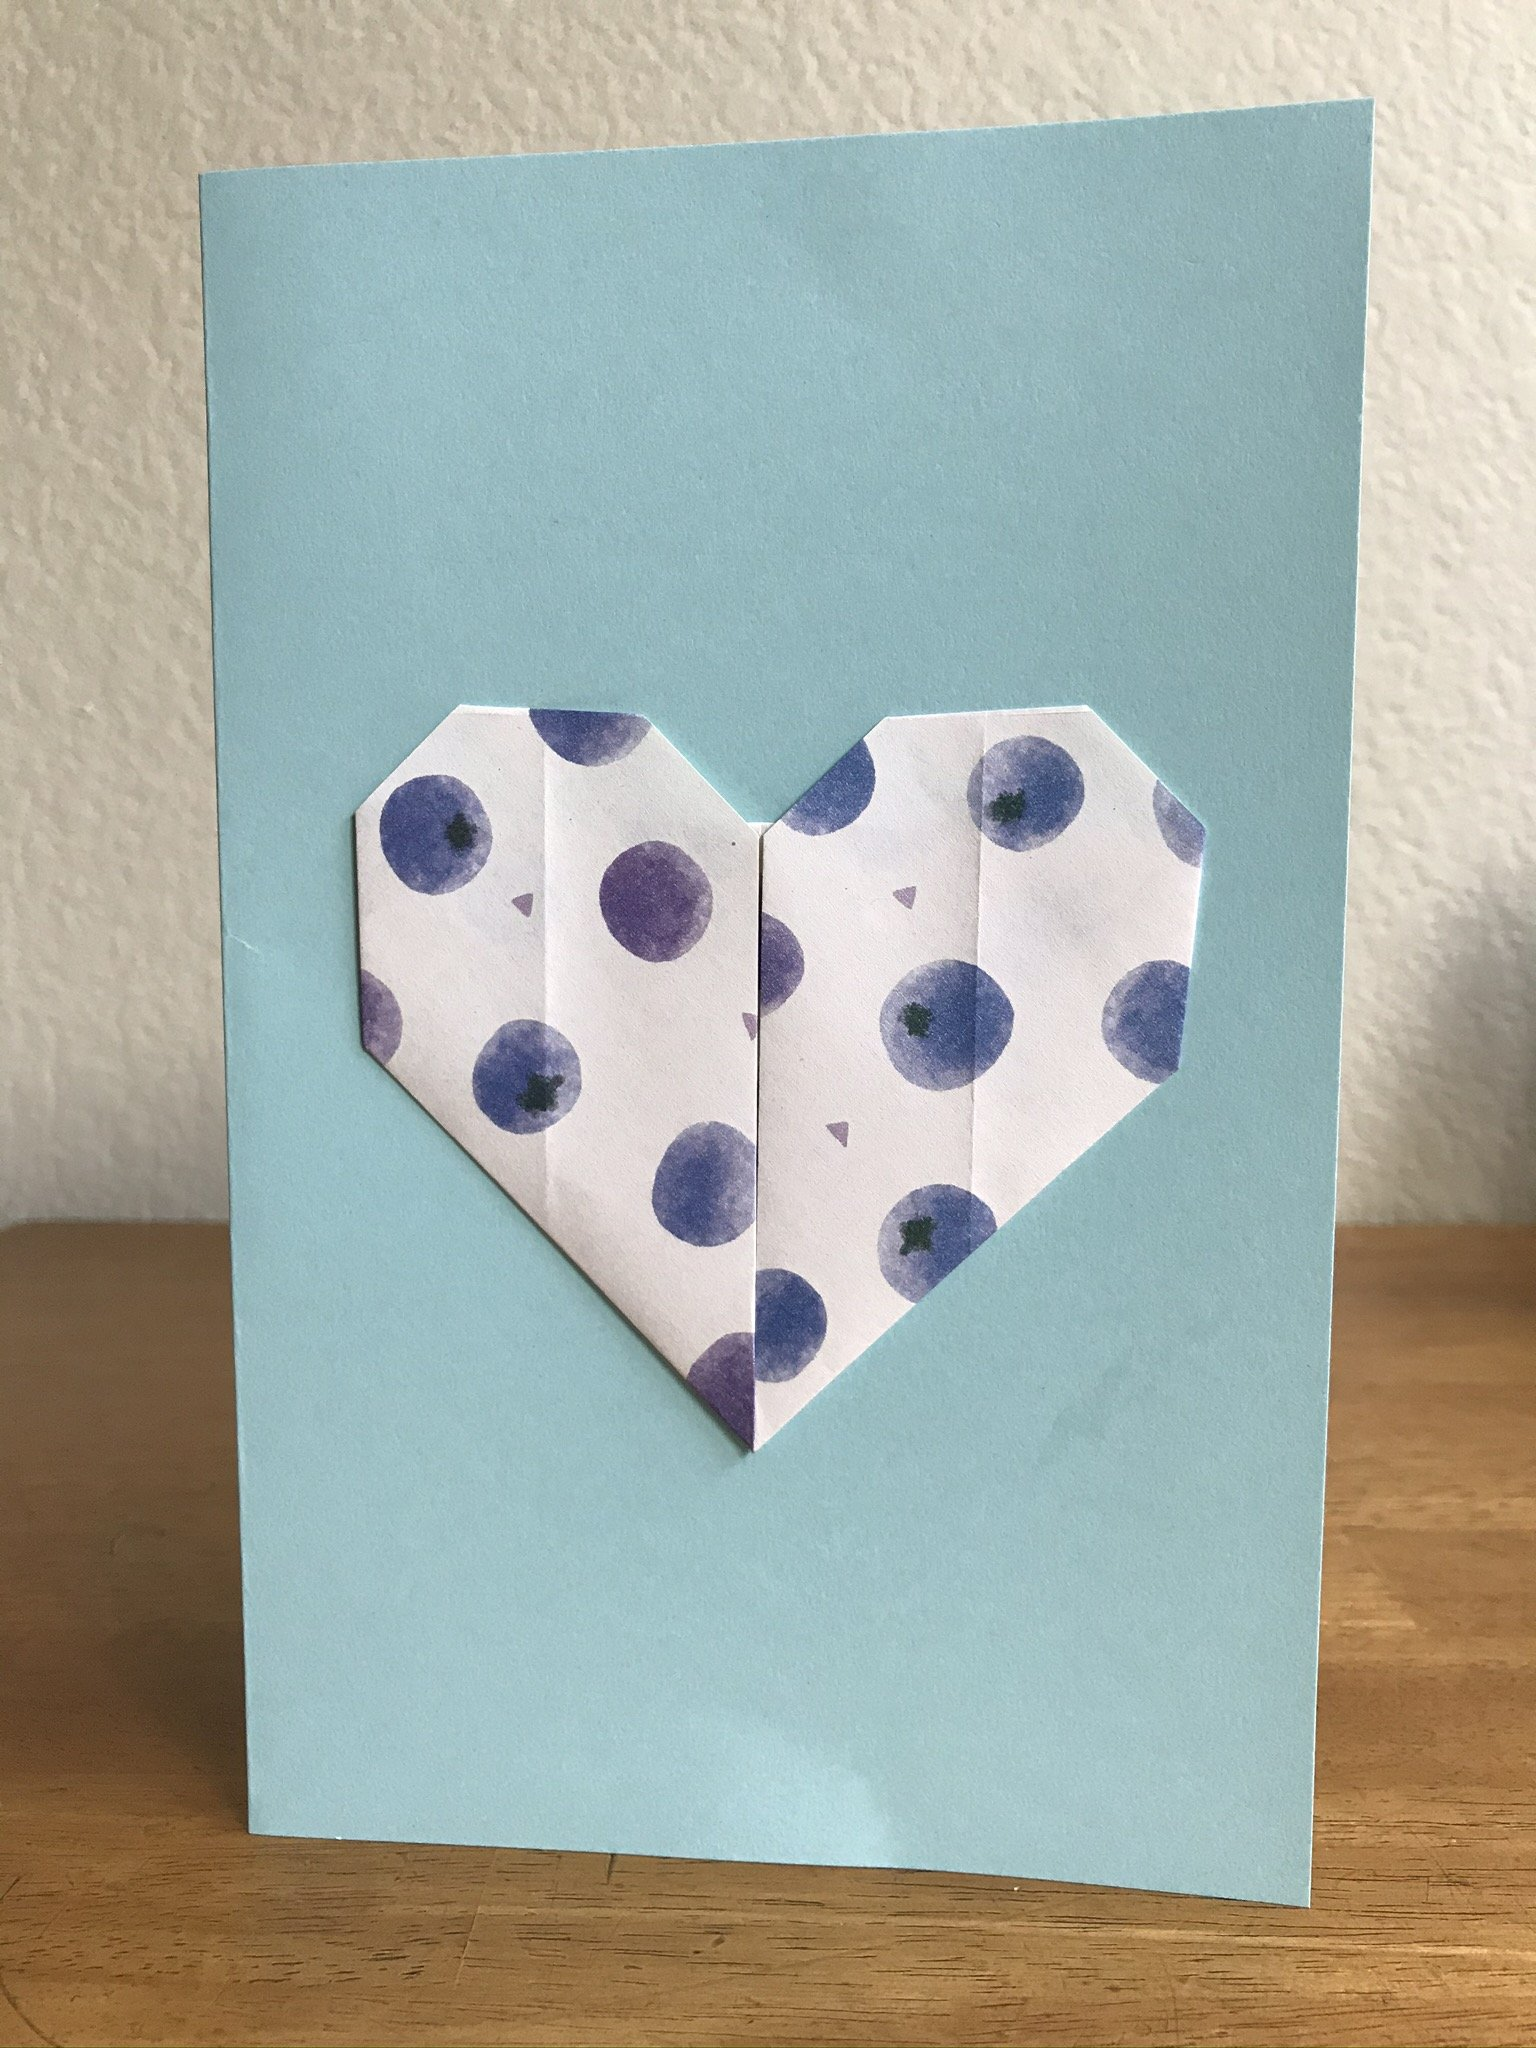 How To Decorate A Card With An Easy Origami Heart